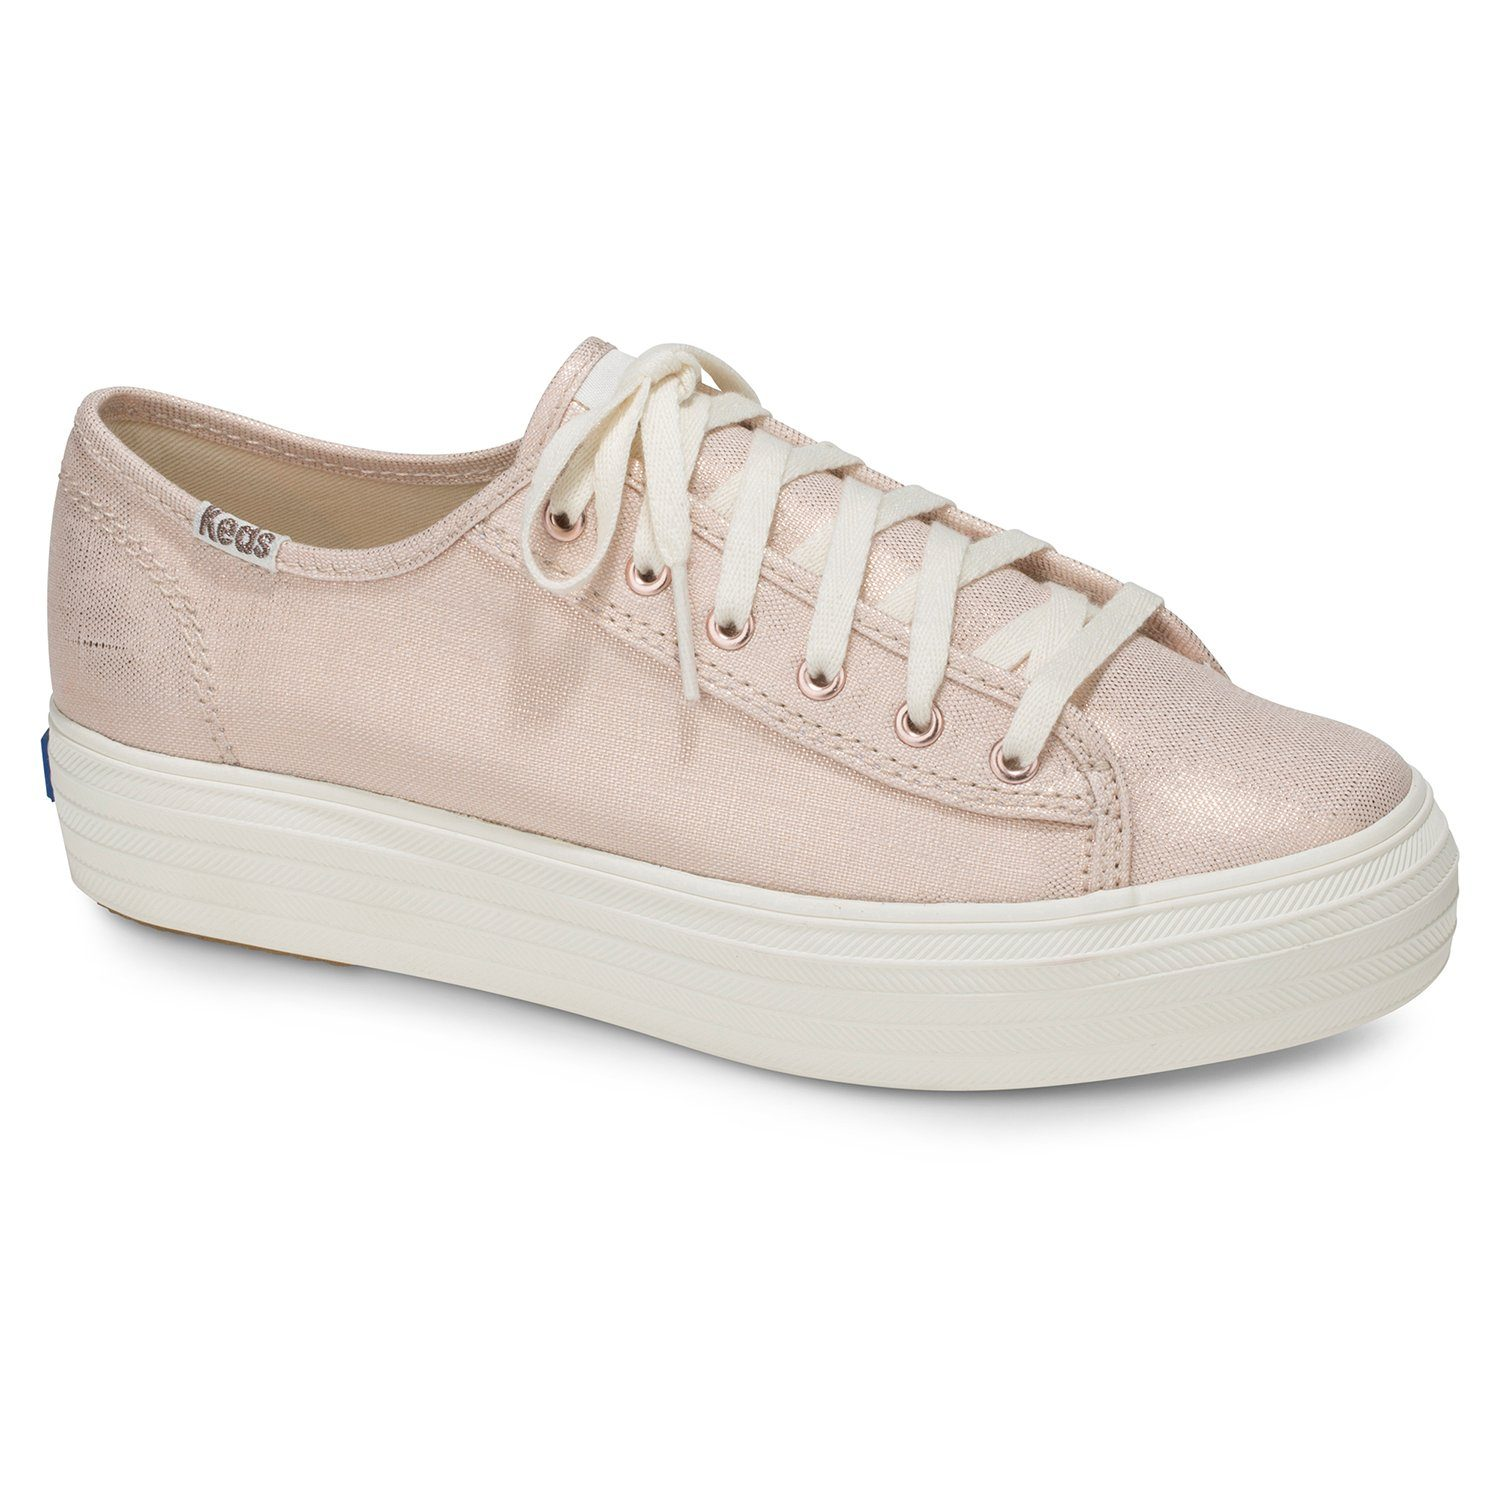 Keds »Triple Canvas Stripe Foxing« Plateausneaker, goldfarben, goldfarben